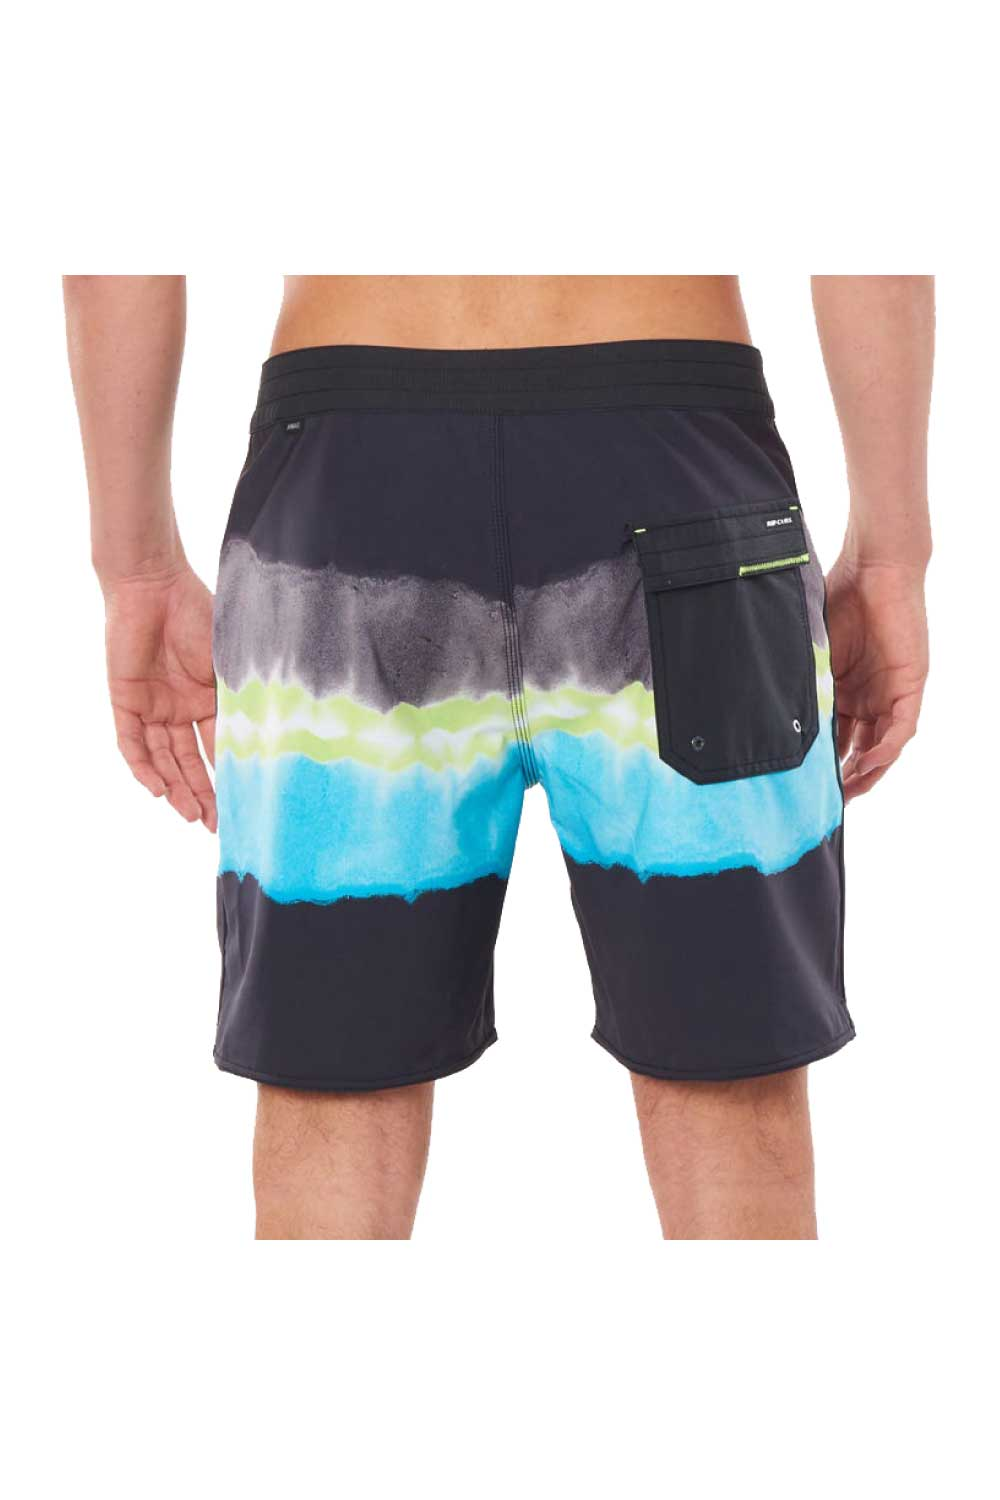 "Rip Curl Men's Mirage Mason Surf Heads 18"" Boardshorts"